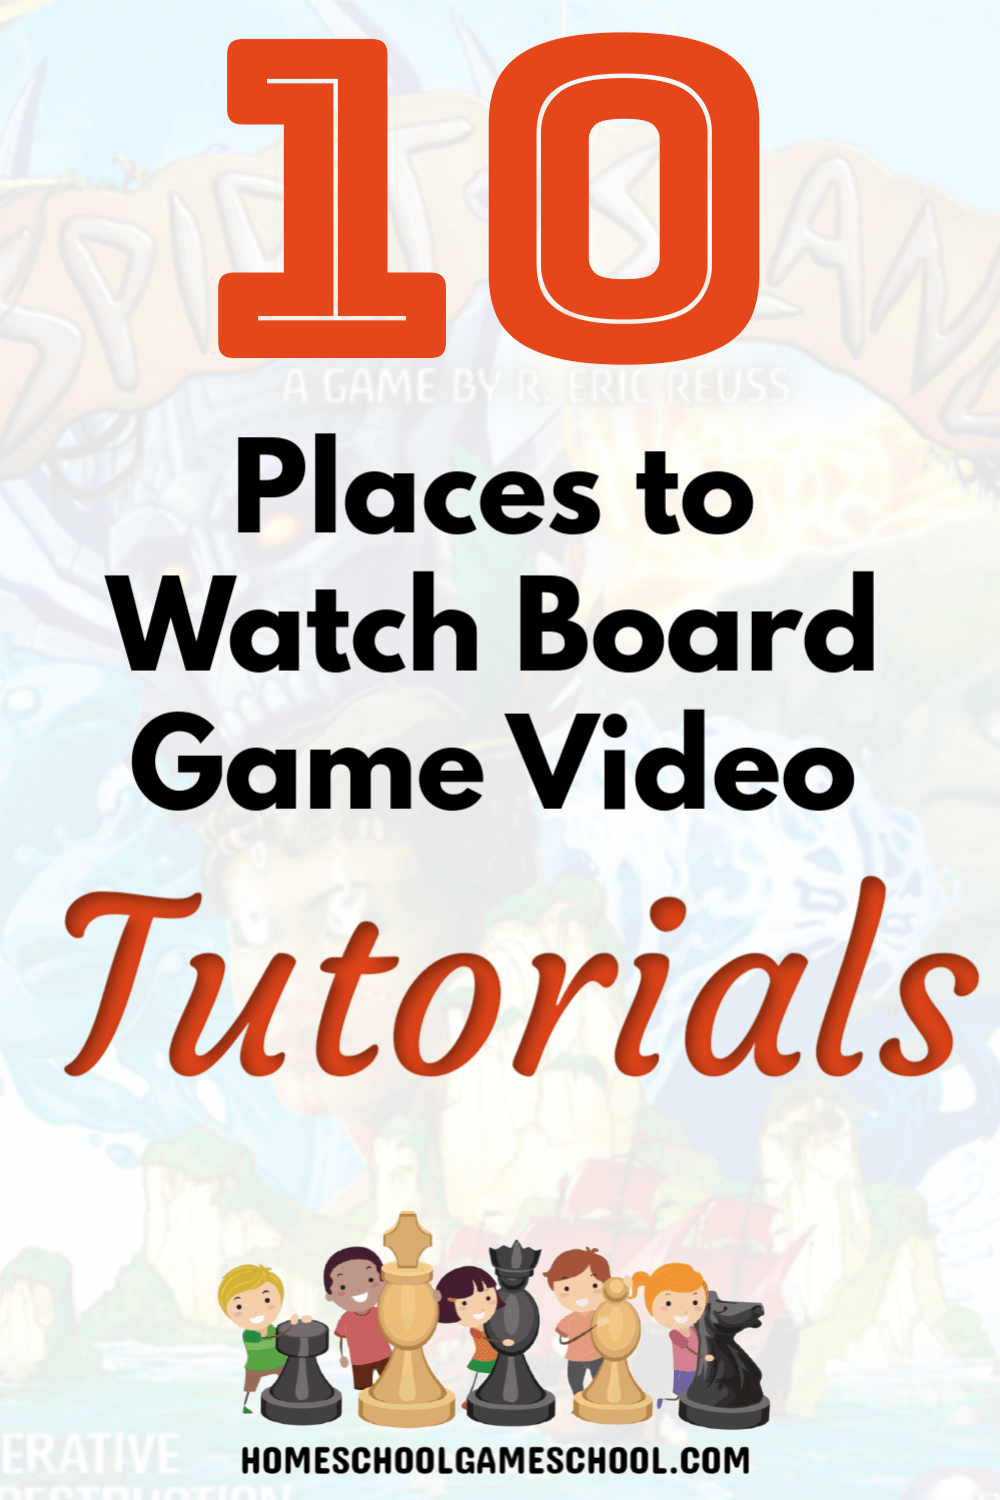 Board Game Tutorials on YouTube